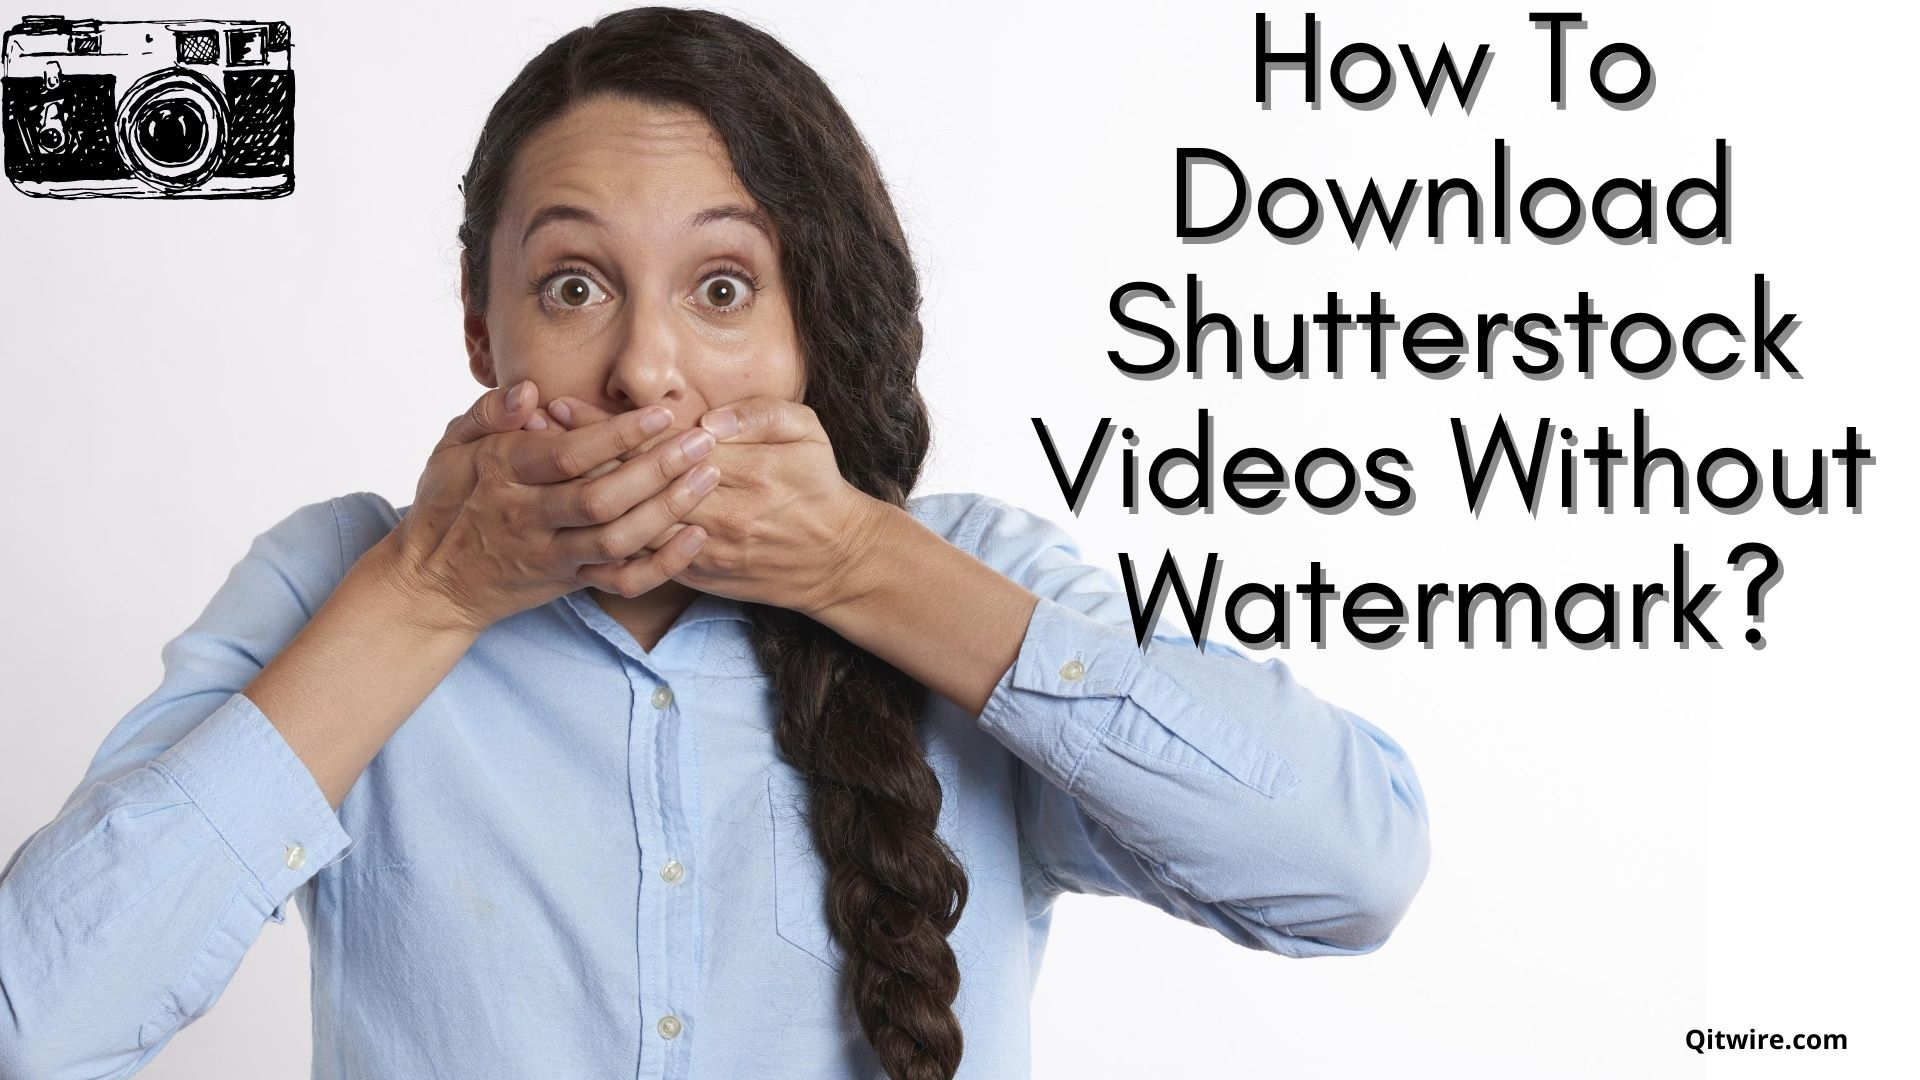 How to Download Shutterstock Videos without Watermark for free